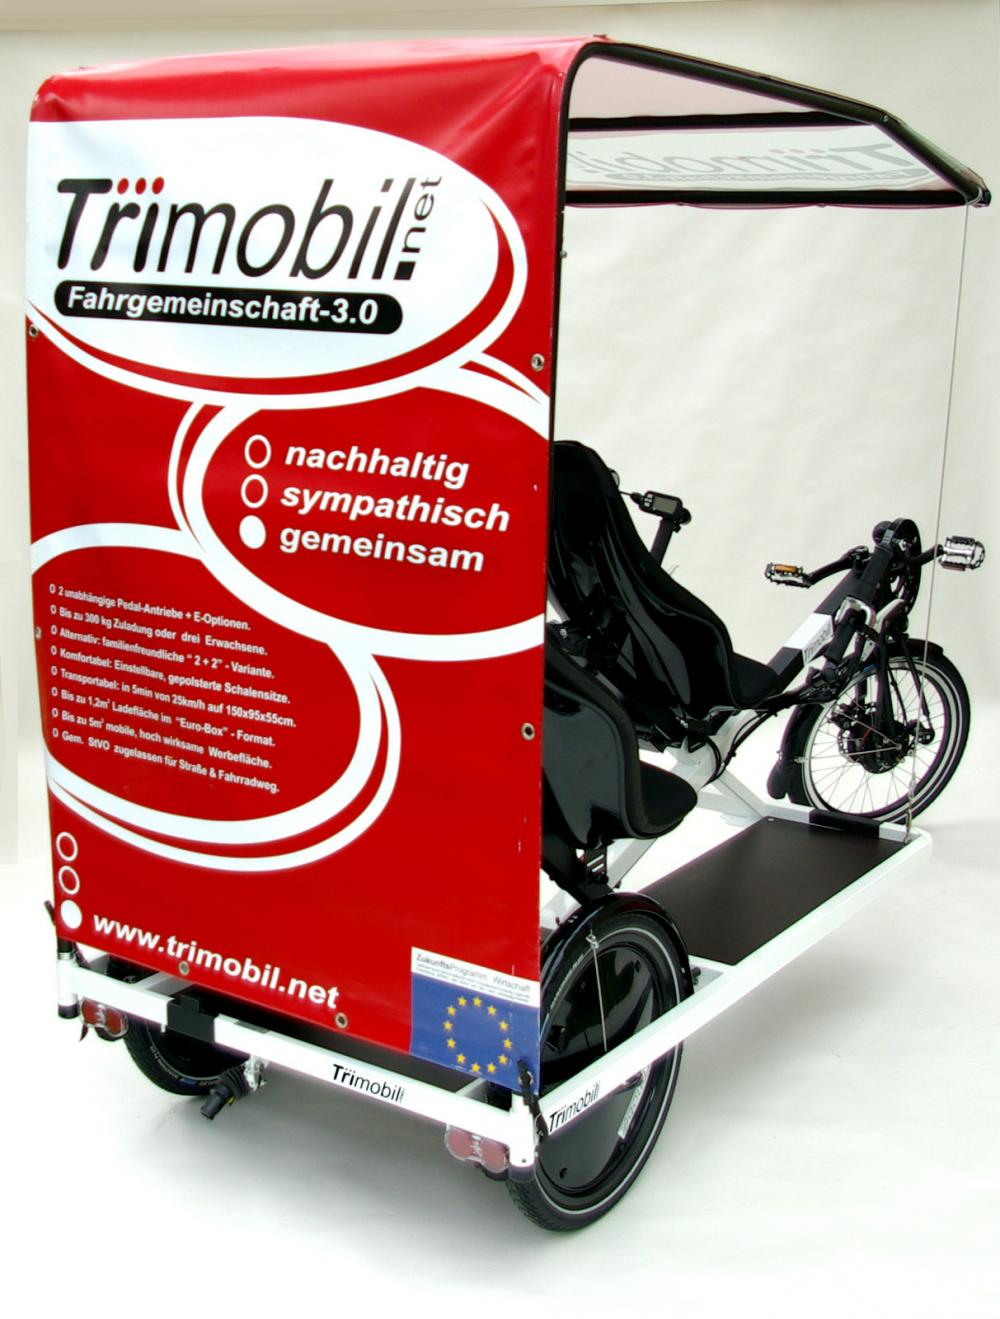 trimobil-e.shuttle_trike_with-advertising-roof_back.1600.jpg